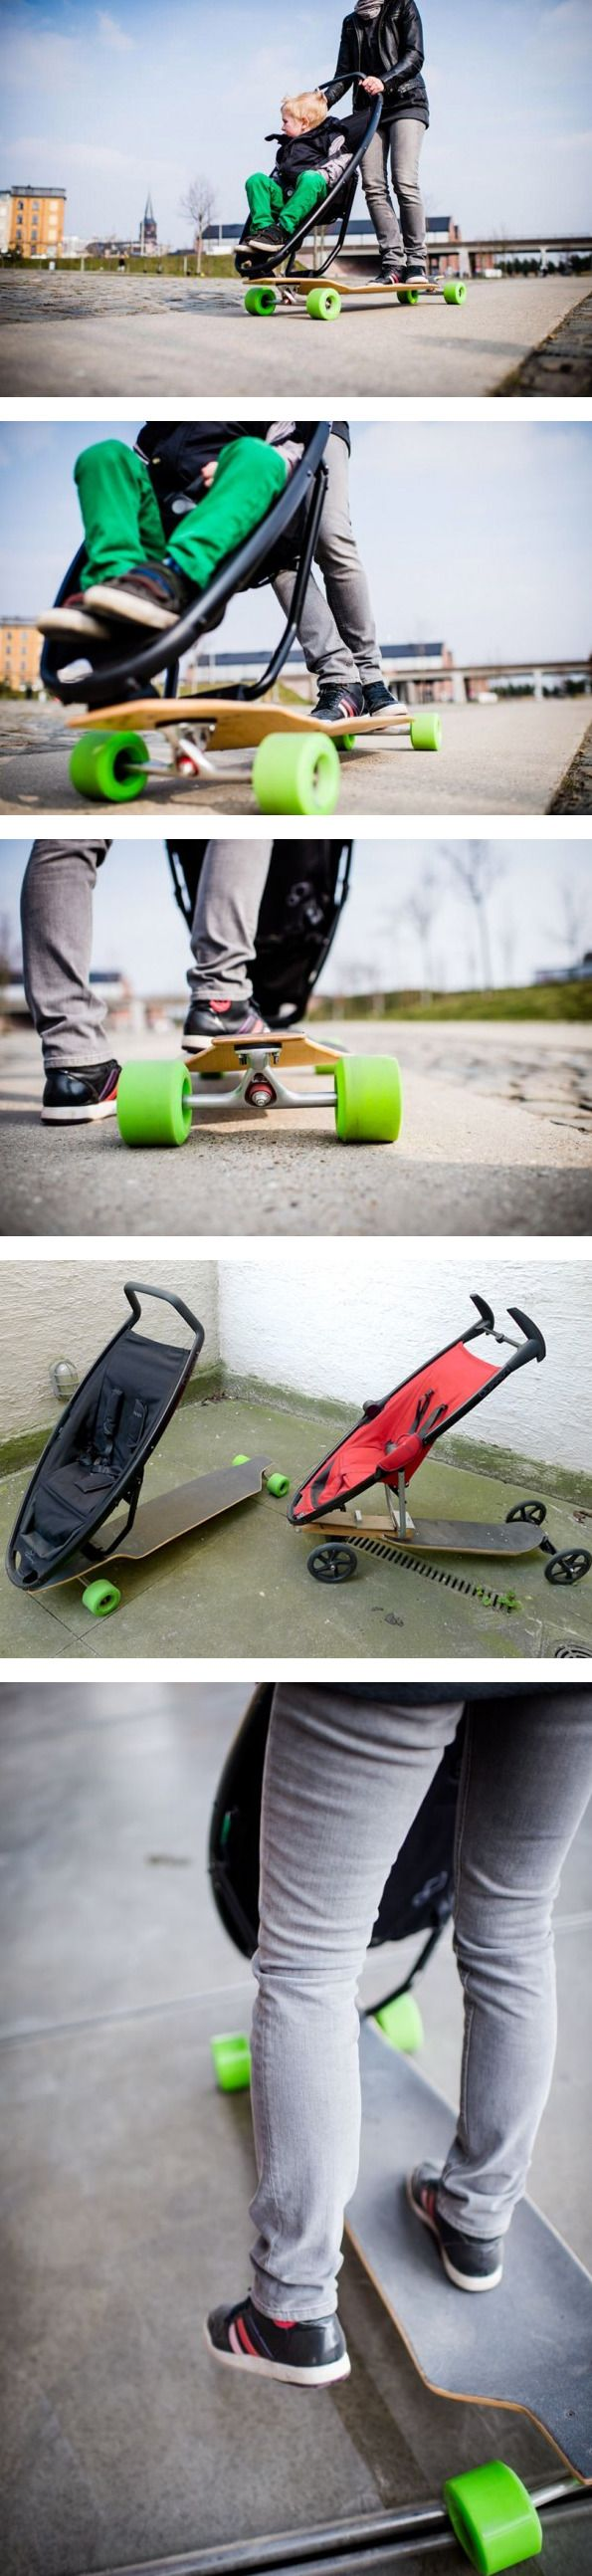 Longboard Stroller, an Urban Mobility Concept For Cool Parents This looks like something Rachael would use later on in life!